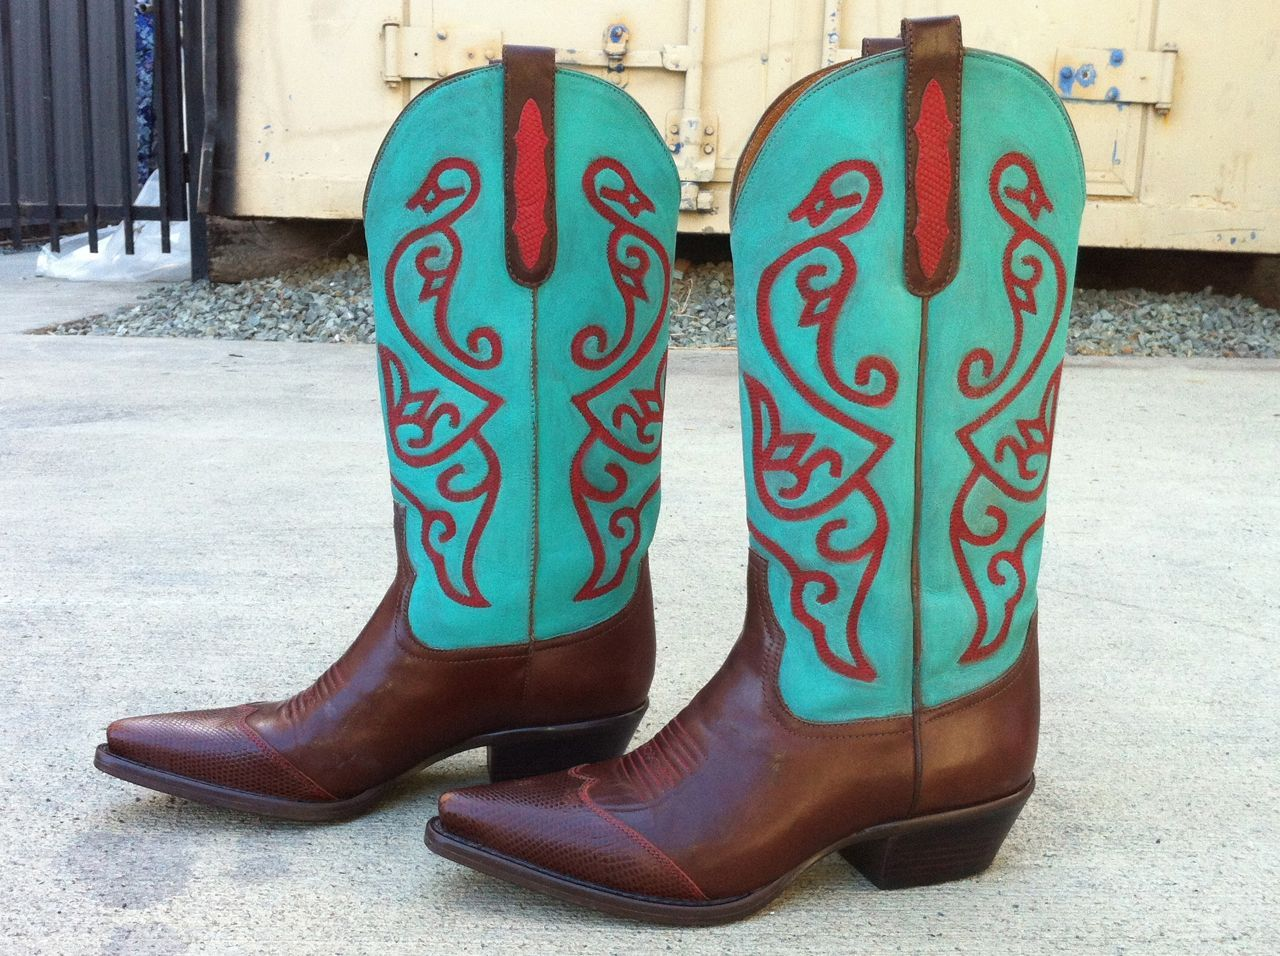 82465fa25b5 Hand-painted cowboy boots, painted with Annie Sloan's Chalk Paint®  decorative paint, in Florence & Emperor's Silk. They still feel like leather !